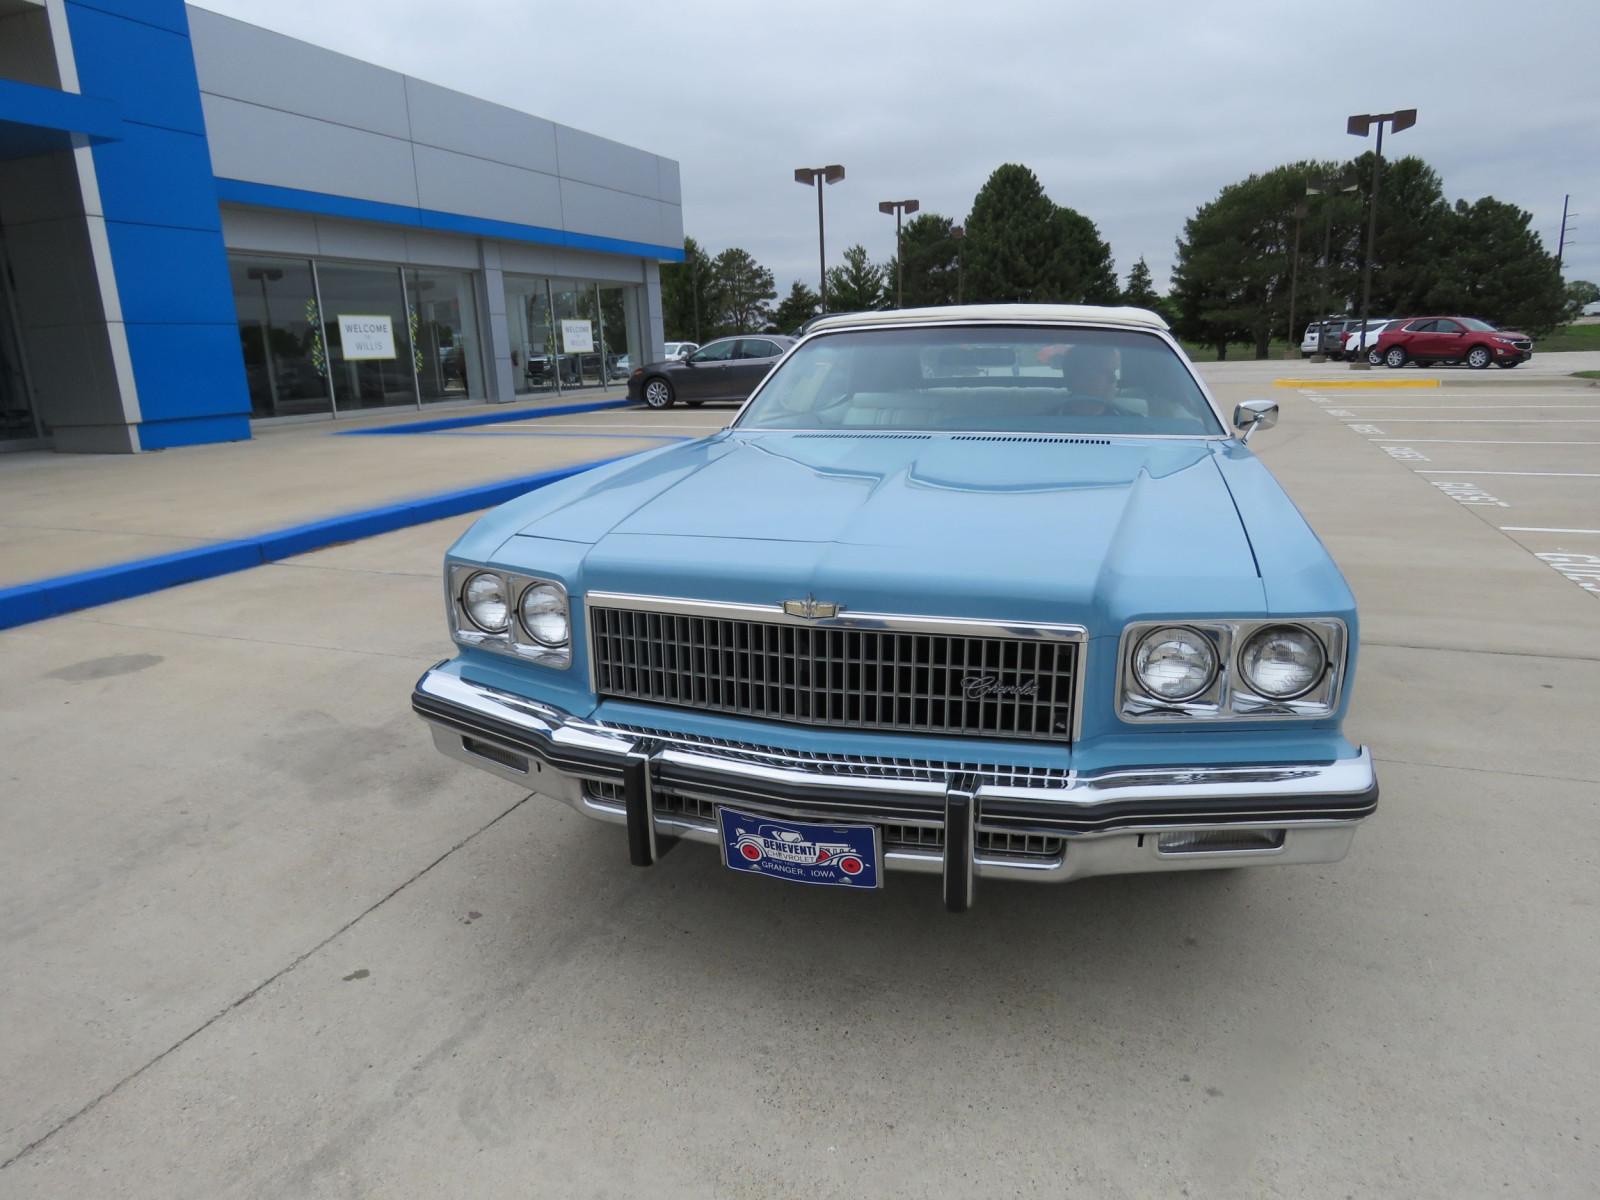 1975 Chevrolet Caprice Classic Convertible - Image 3